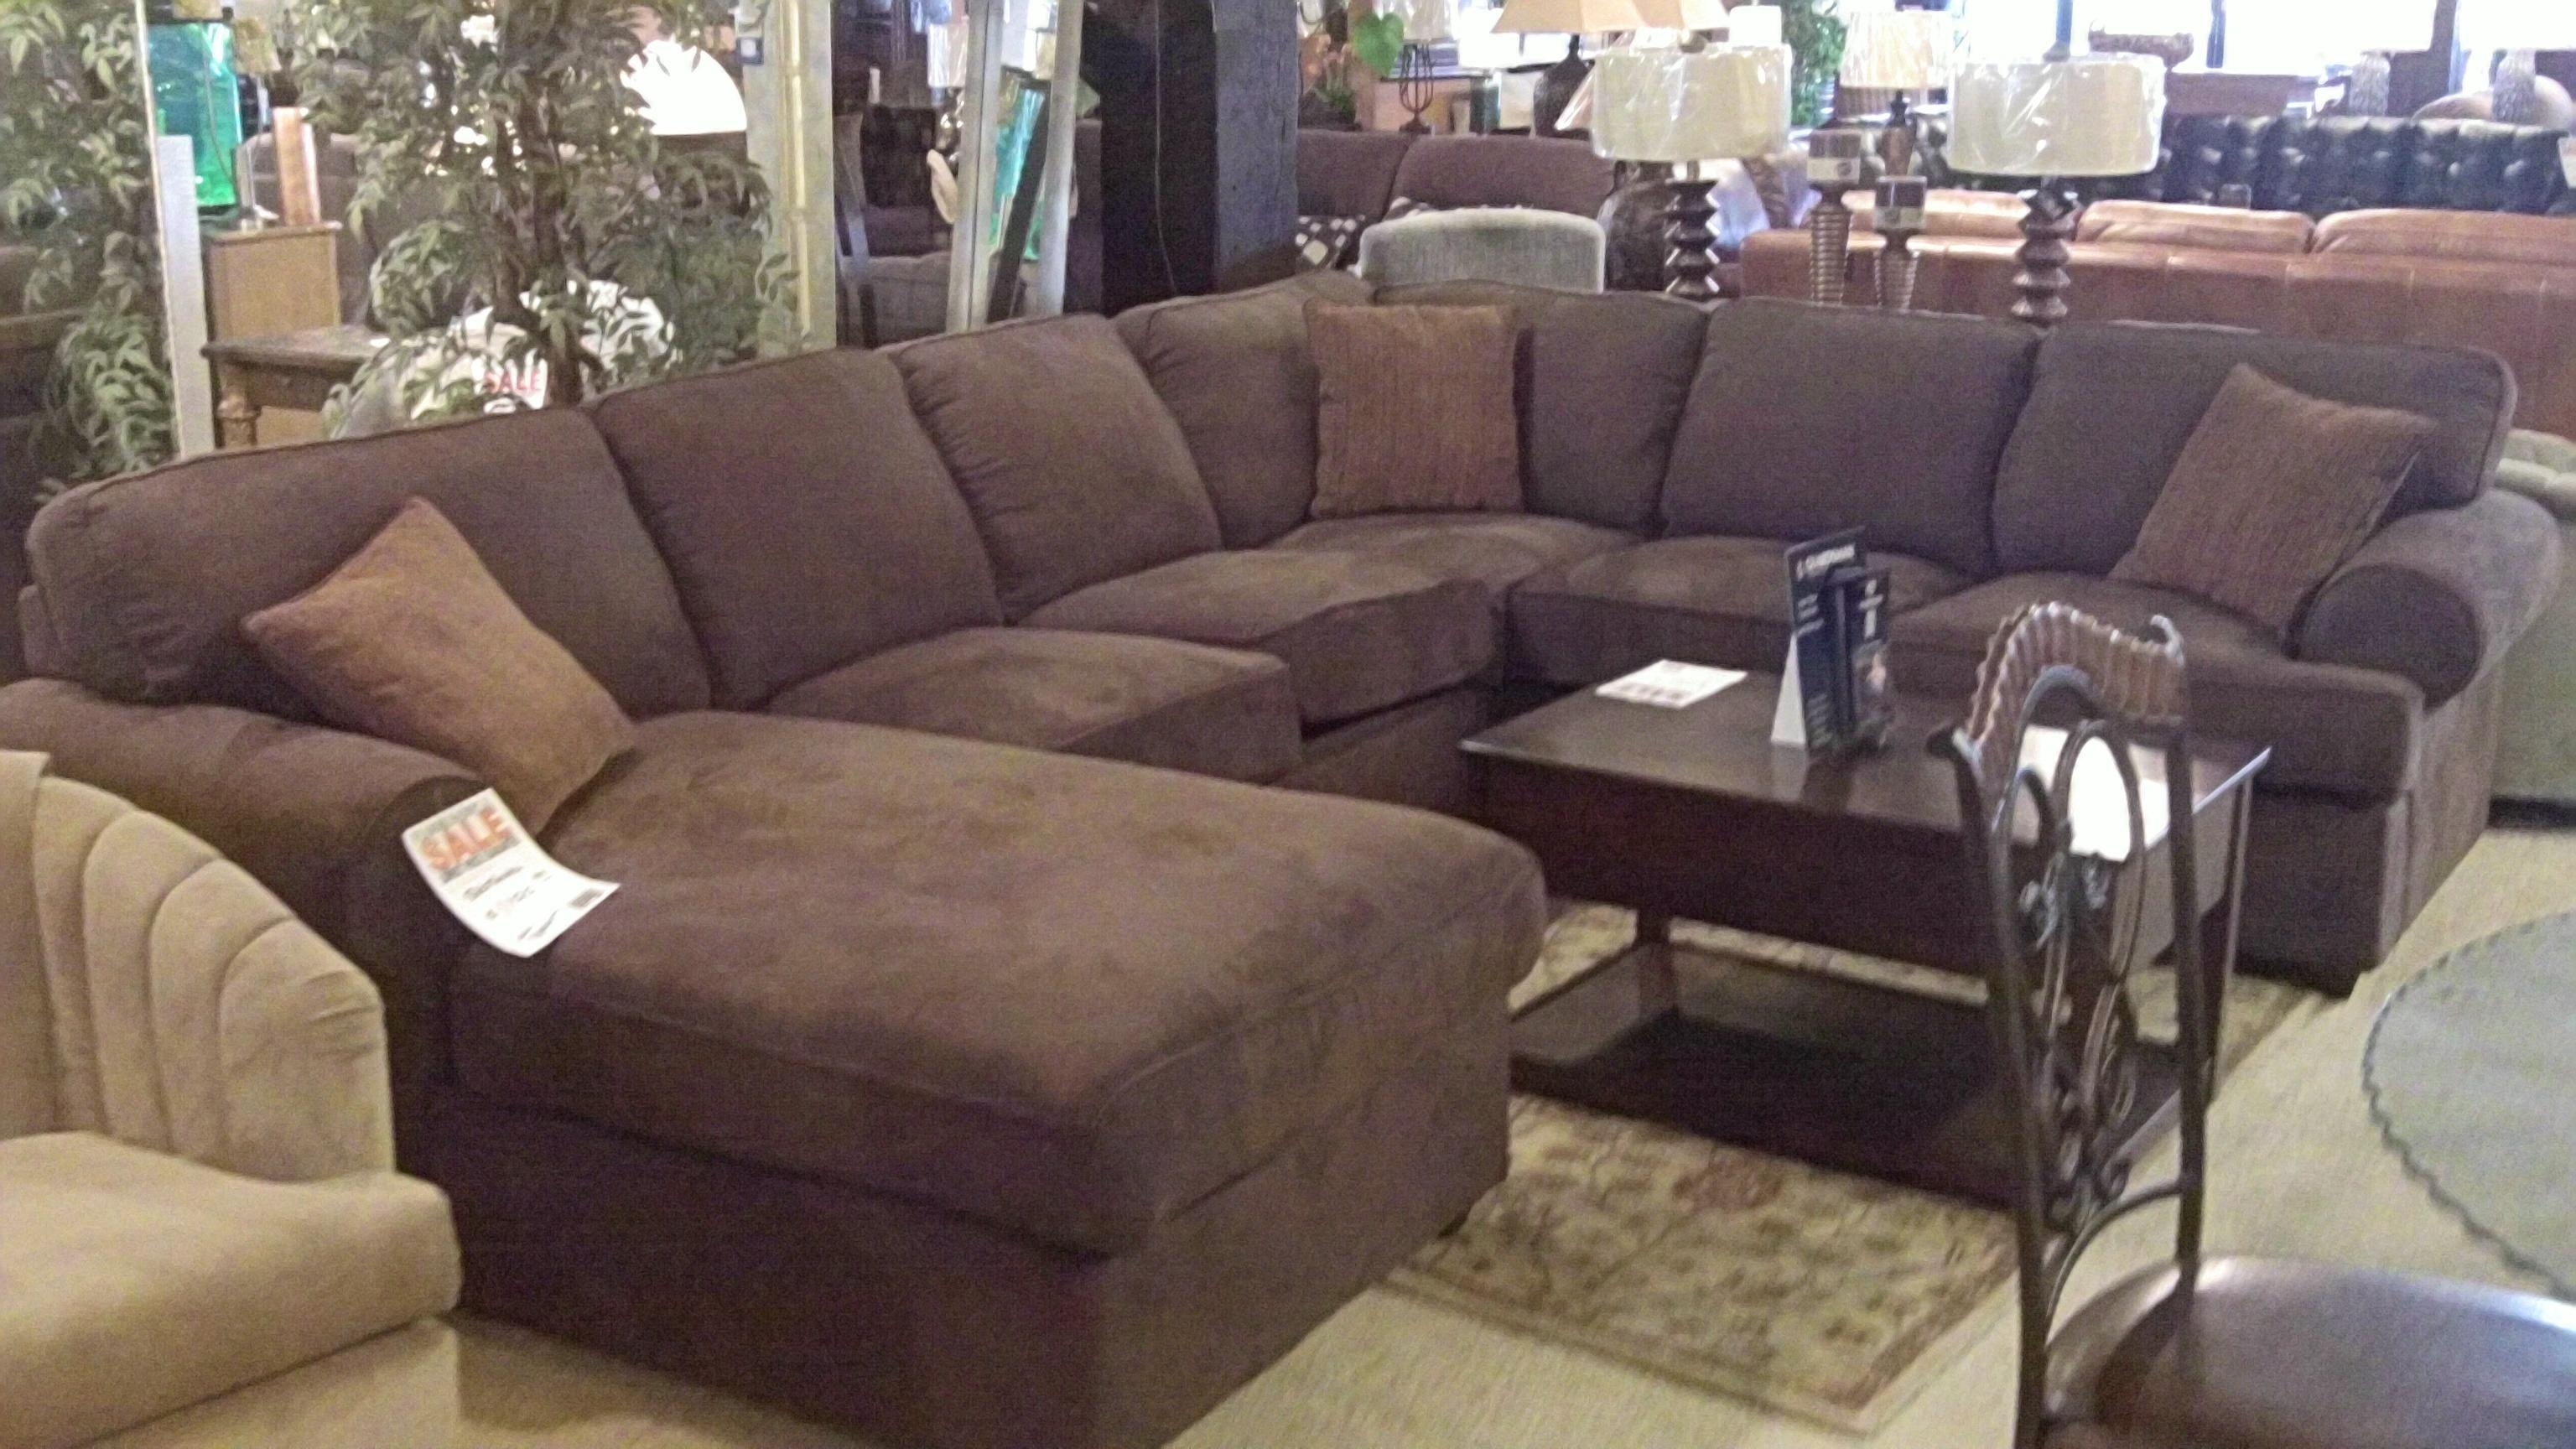 Sofas Center : Charming Oversized Sectional Sofa With Chaise About Pertaining To Sectional Sofas Portland (Image 13 of 20)